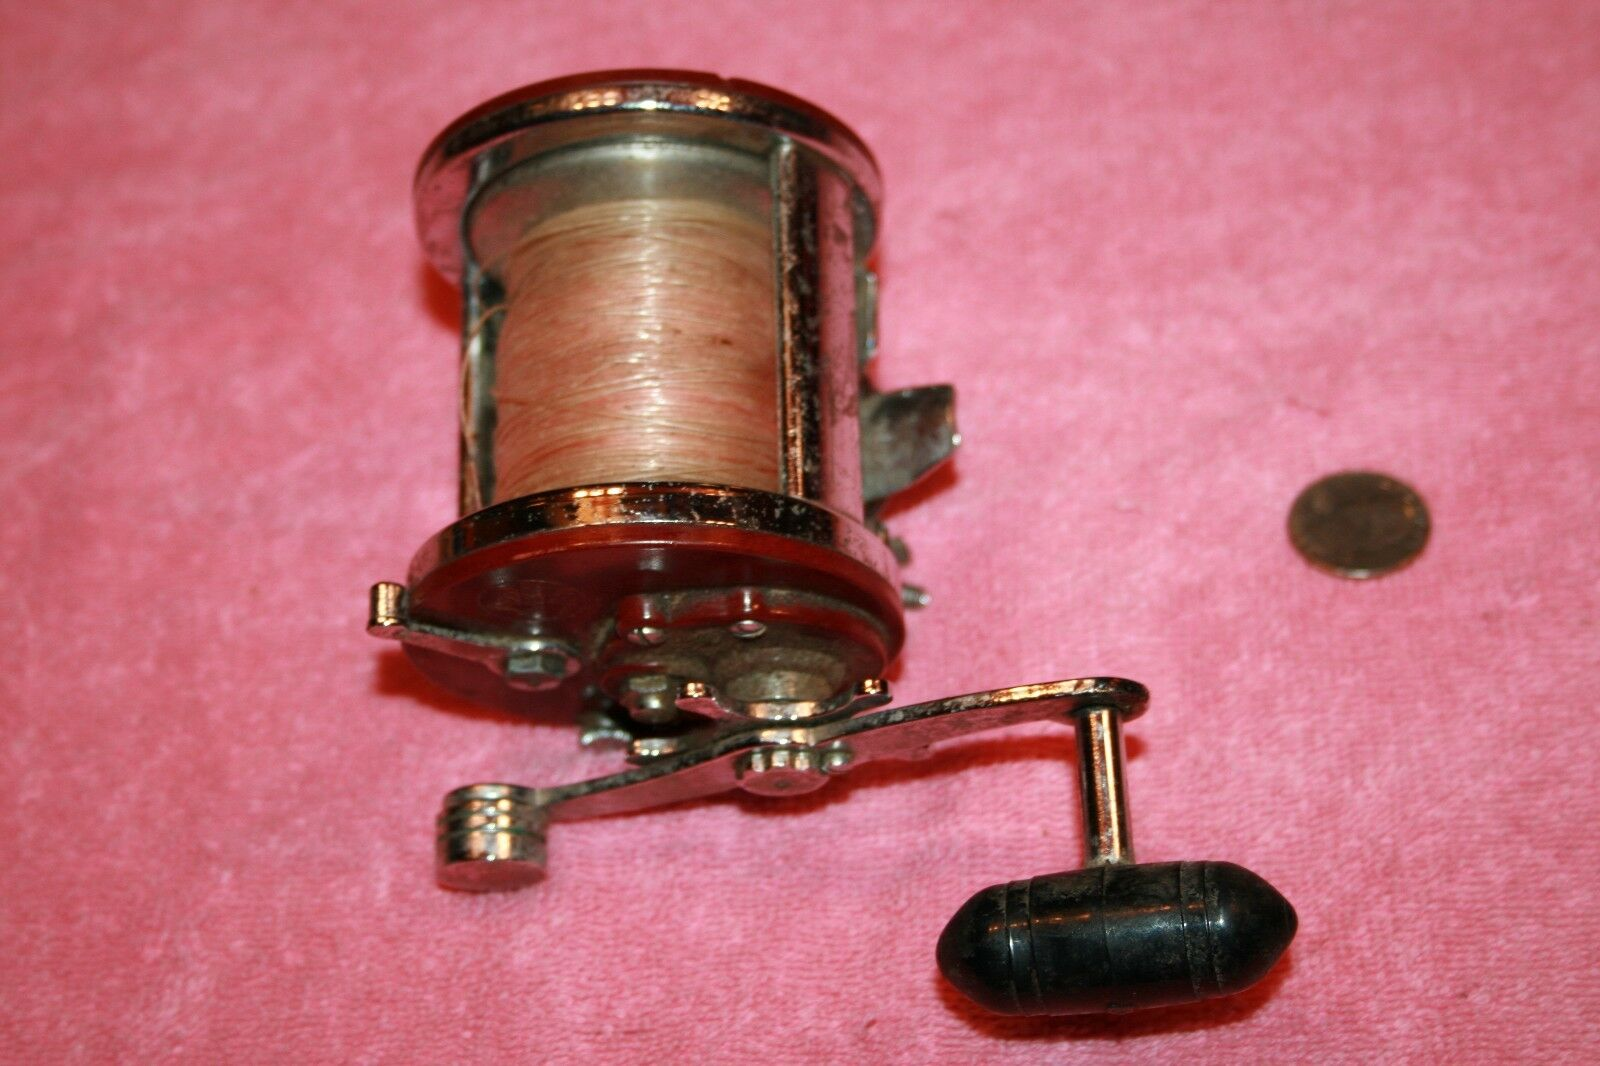 Penn Jig-Master No. 500 Fishing  Reel Made in USA  counter genuine